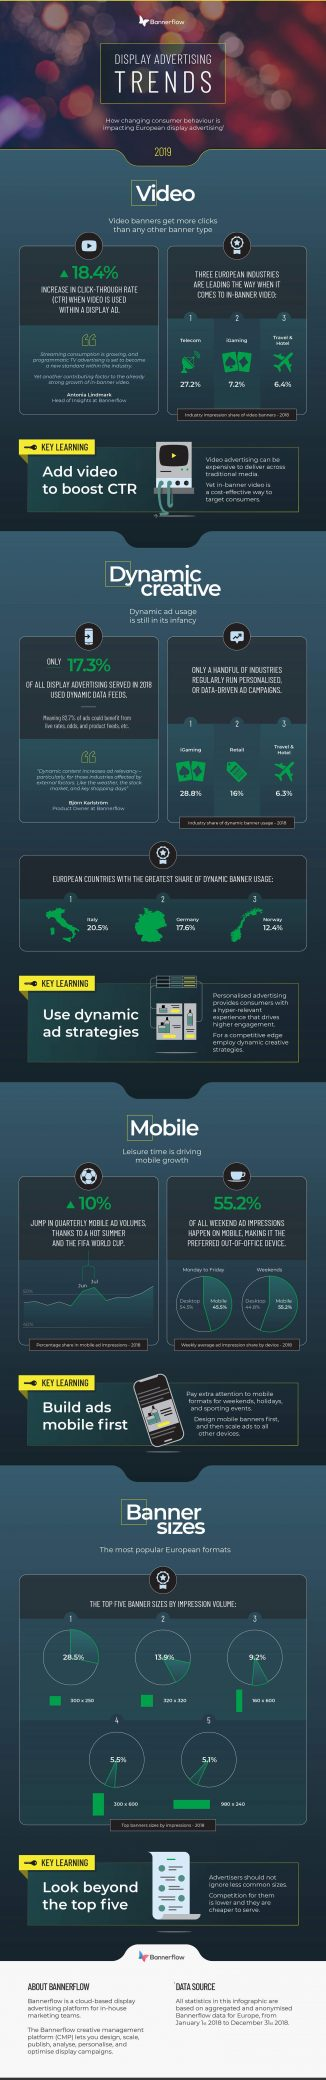 The Display Advertising Trends of 2019 [Infographic]